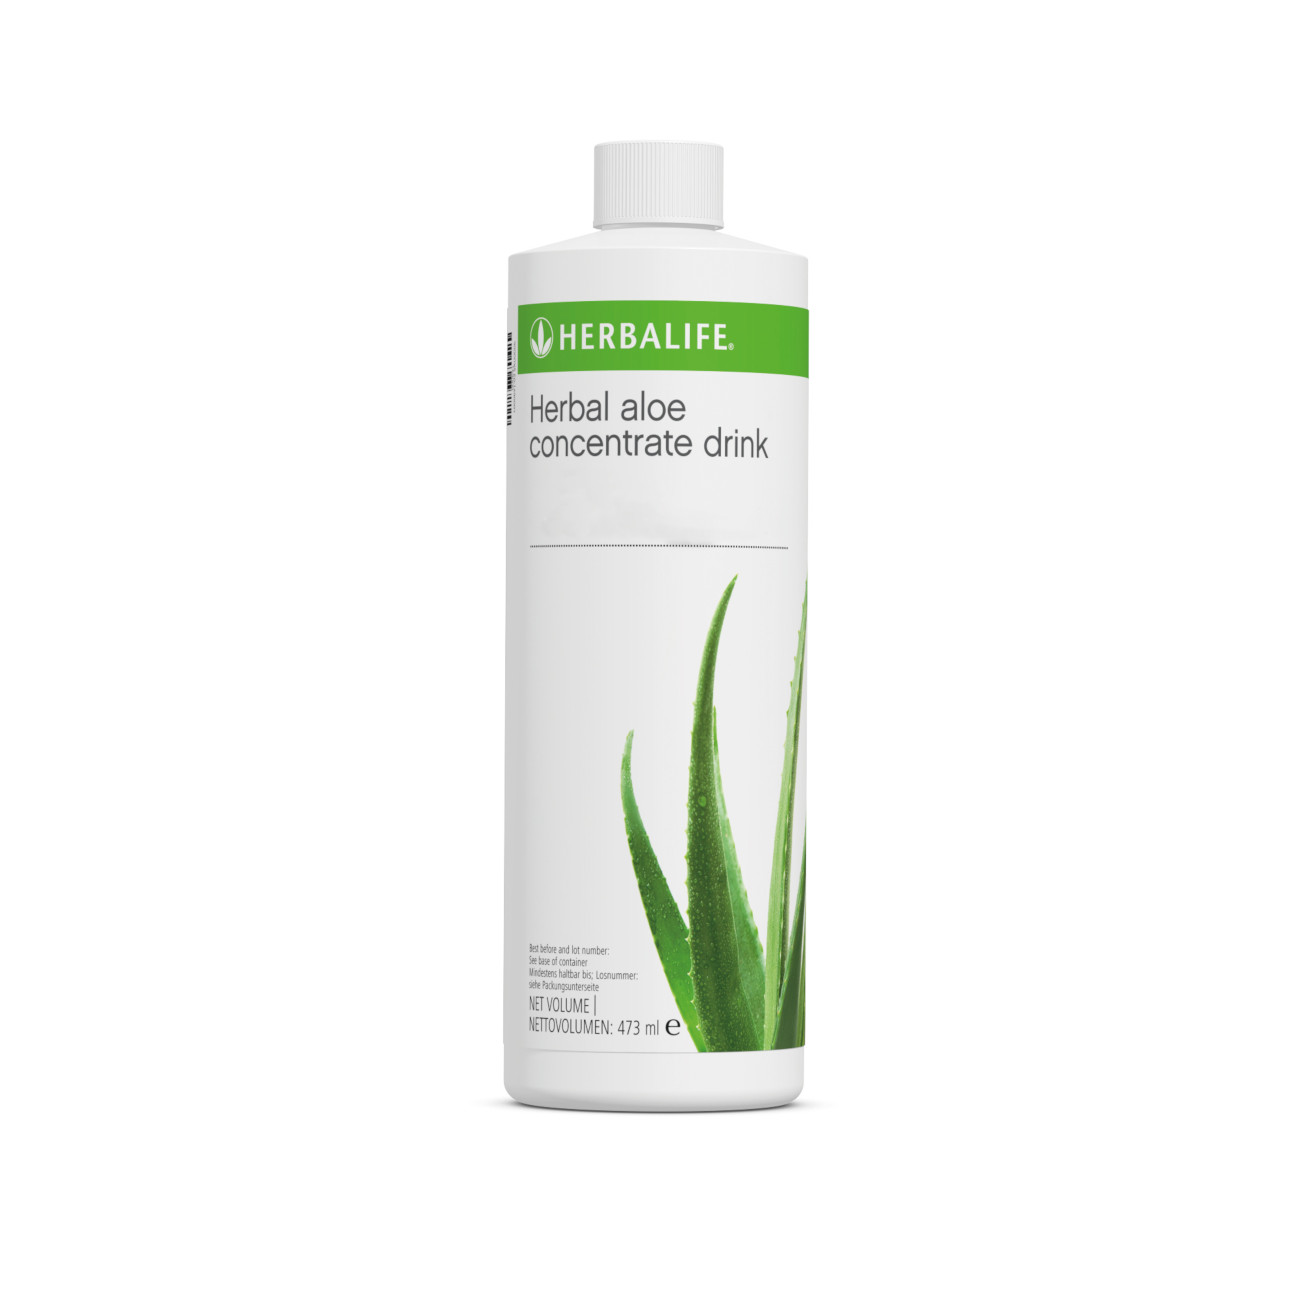 Herbal Aloe Concentrate Drink Original Flavoured product shot